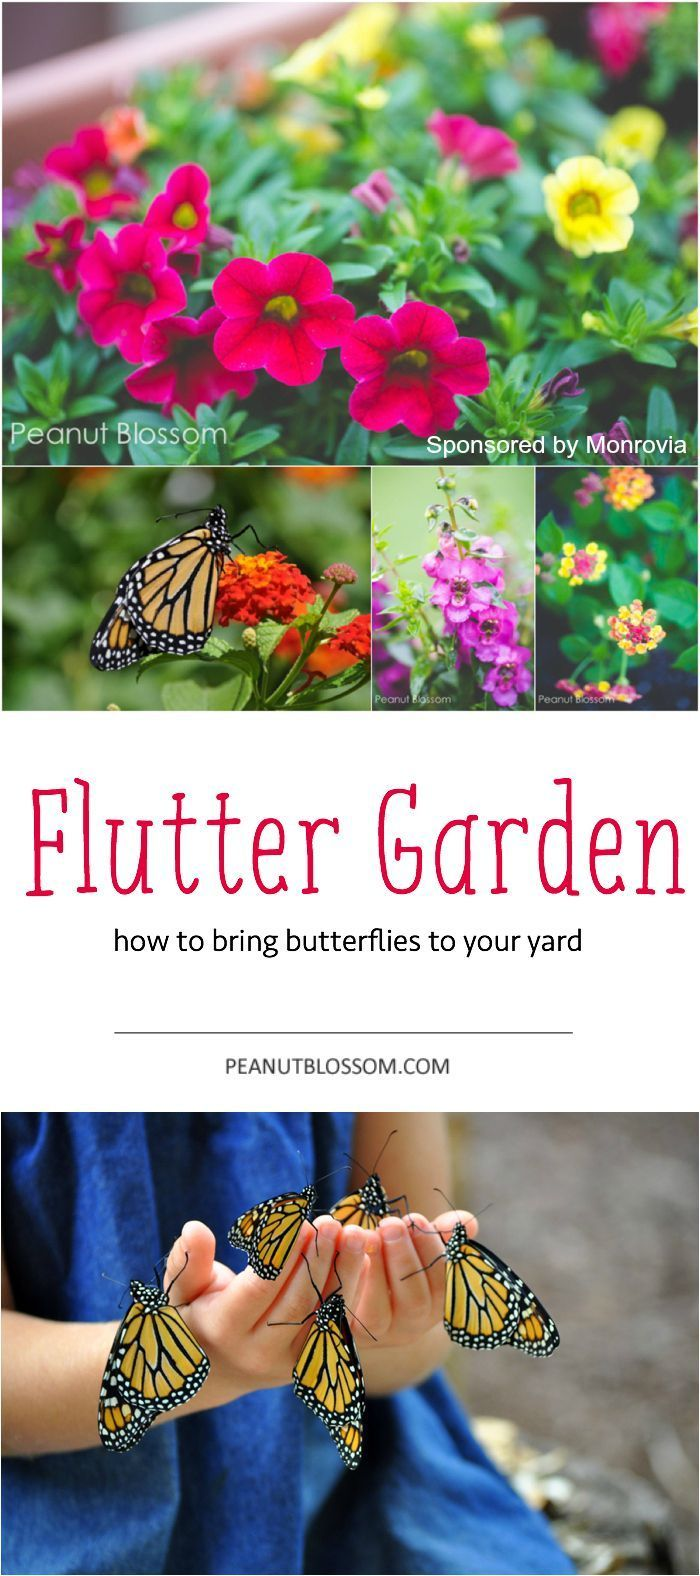 Butterfly Garden Ideas butterfly shaped garden plan a bit elaborate but it helps give ideas of plants to use Find This Pin And More On Butterflybee Garden Ideas From The Barn Nursery Chattanooga Tn